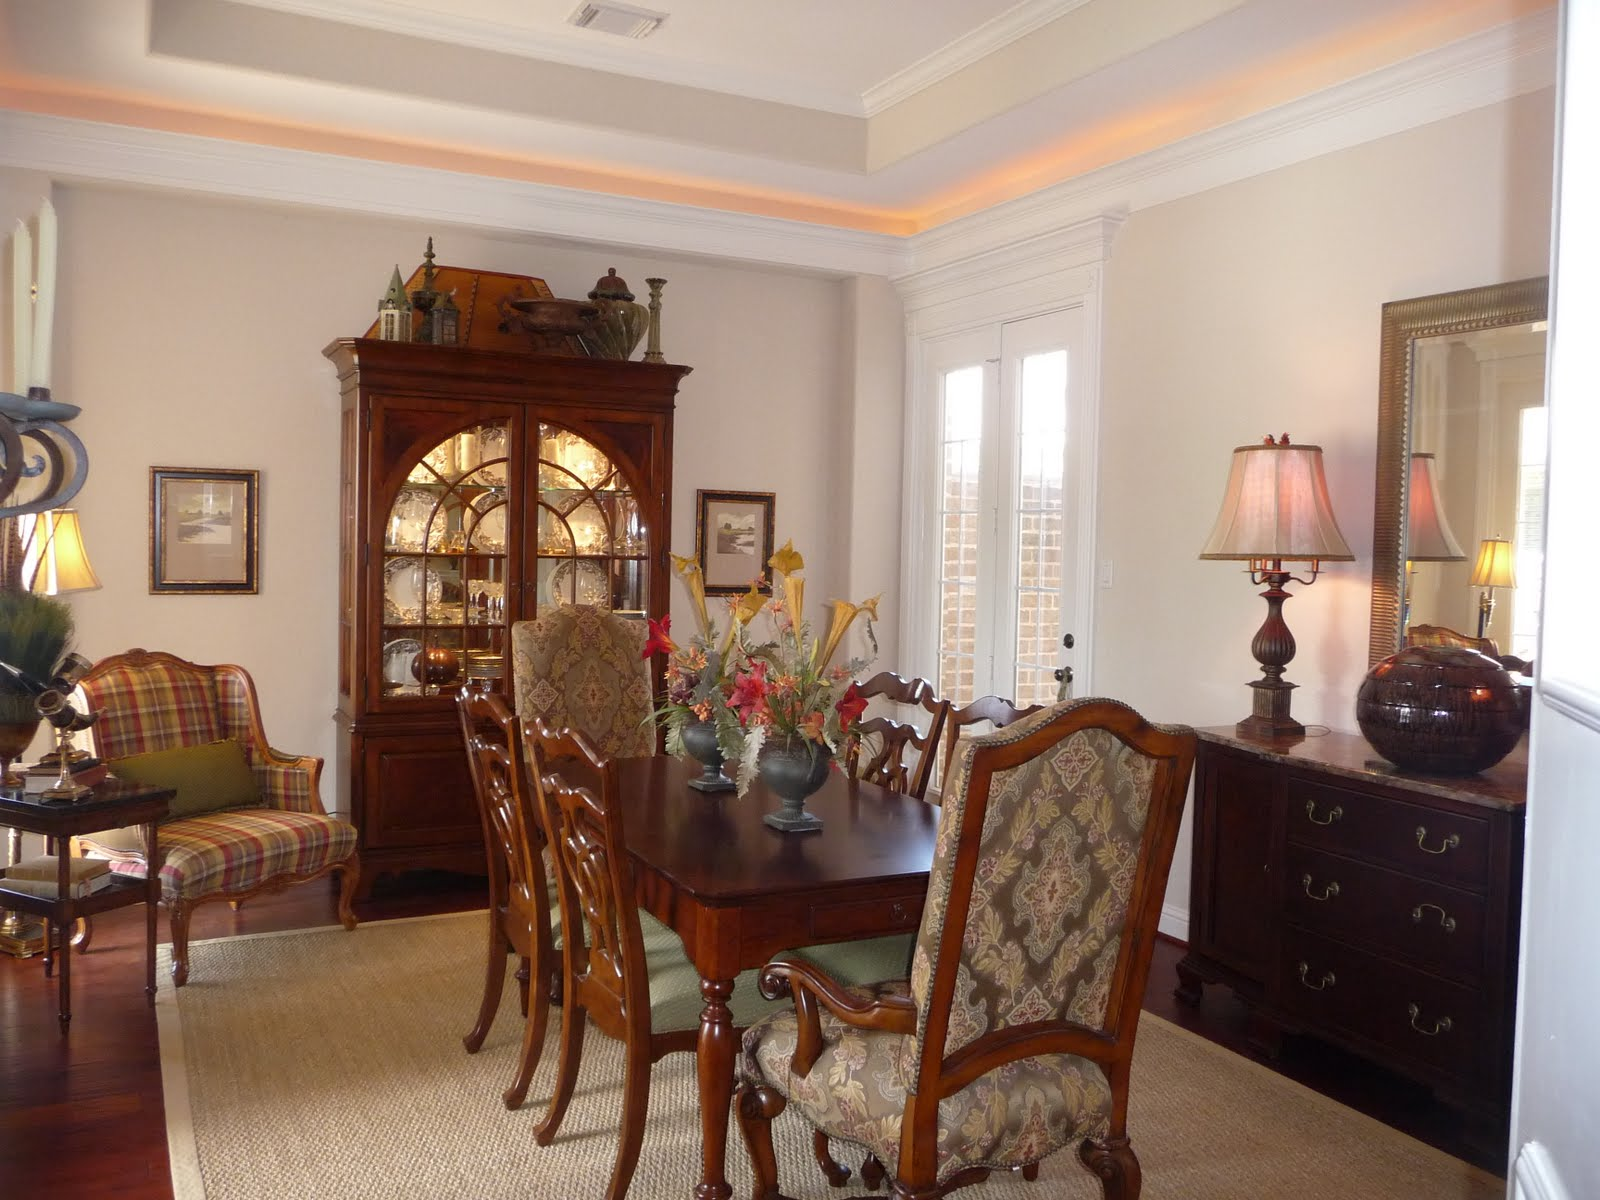 Home interior design and decorating ideas dining room for Decorating your dining room ideas